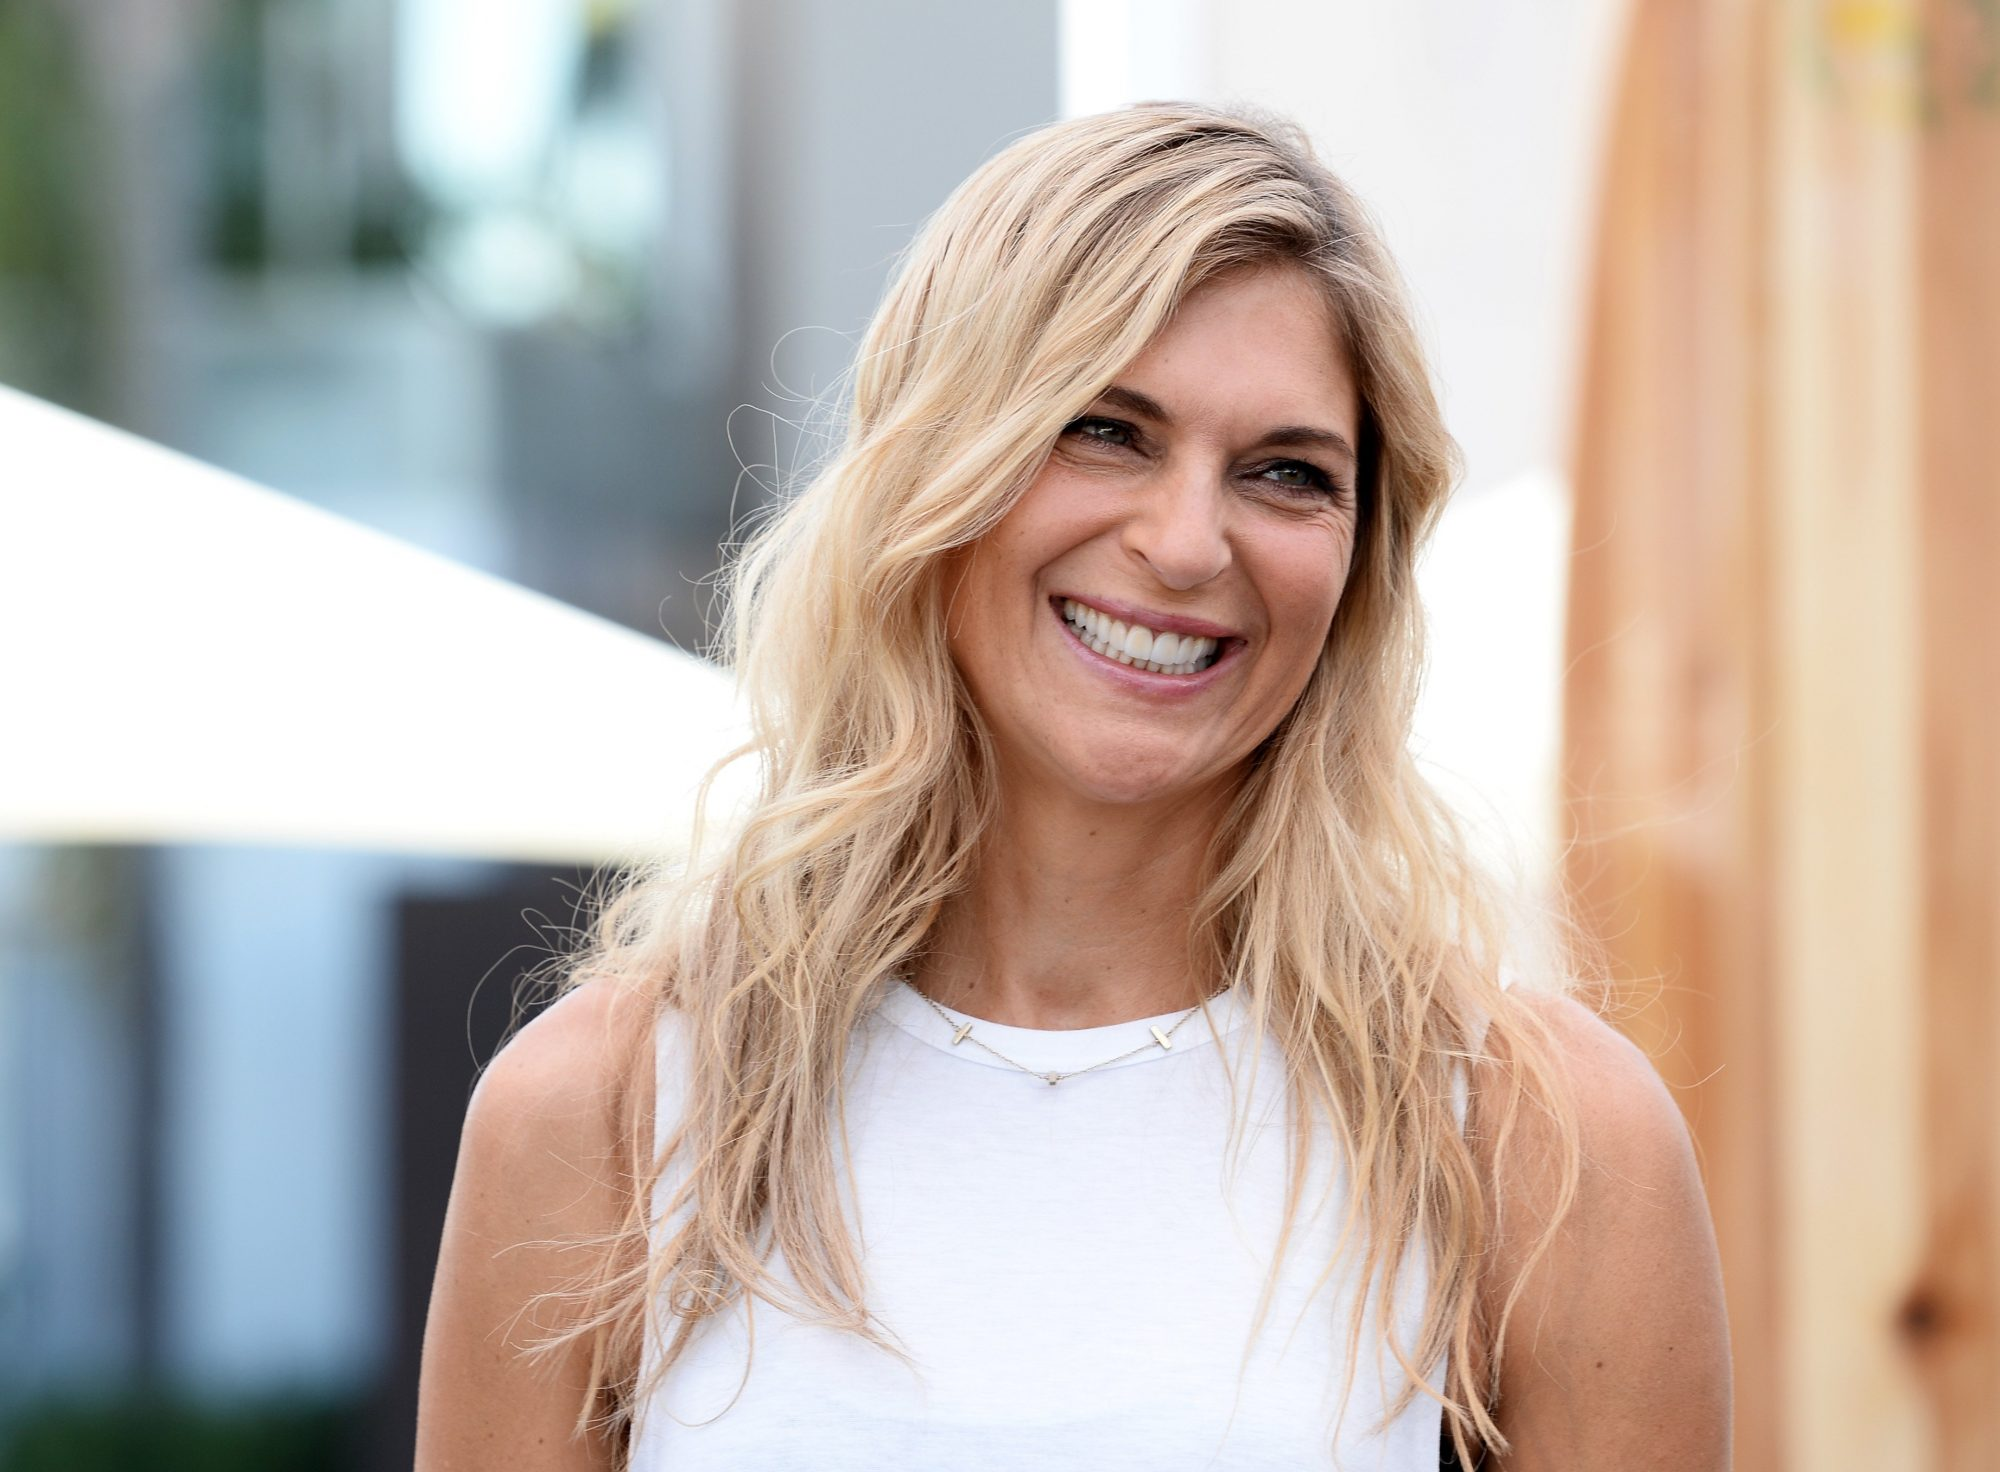 Fitness Icons Laird Hamilton And Gabby Reece Join Land Rover For North American Debut Of All New  Discovery SUV